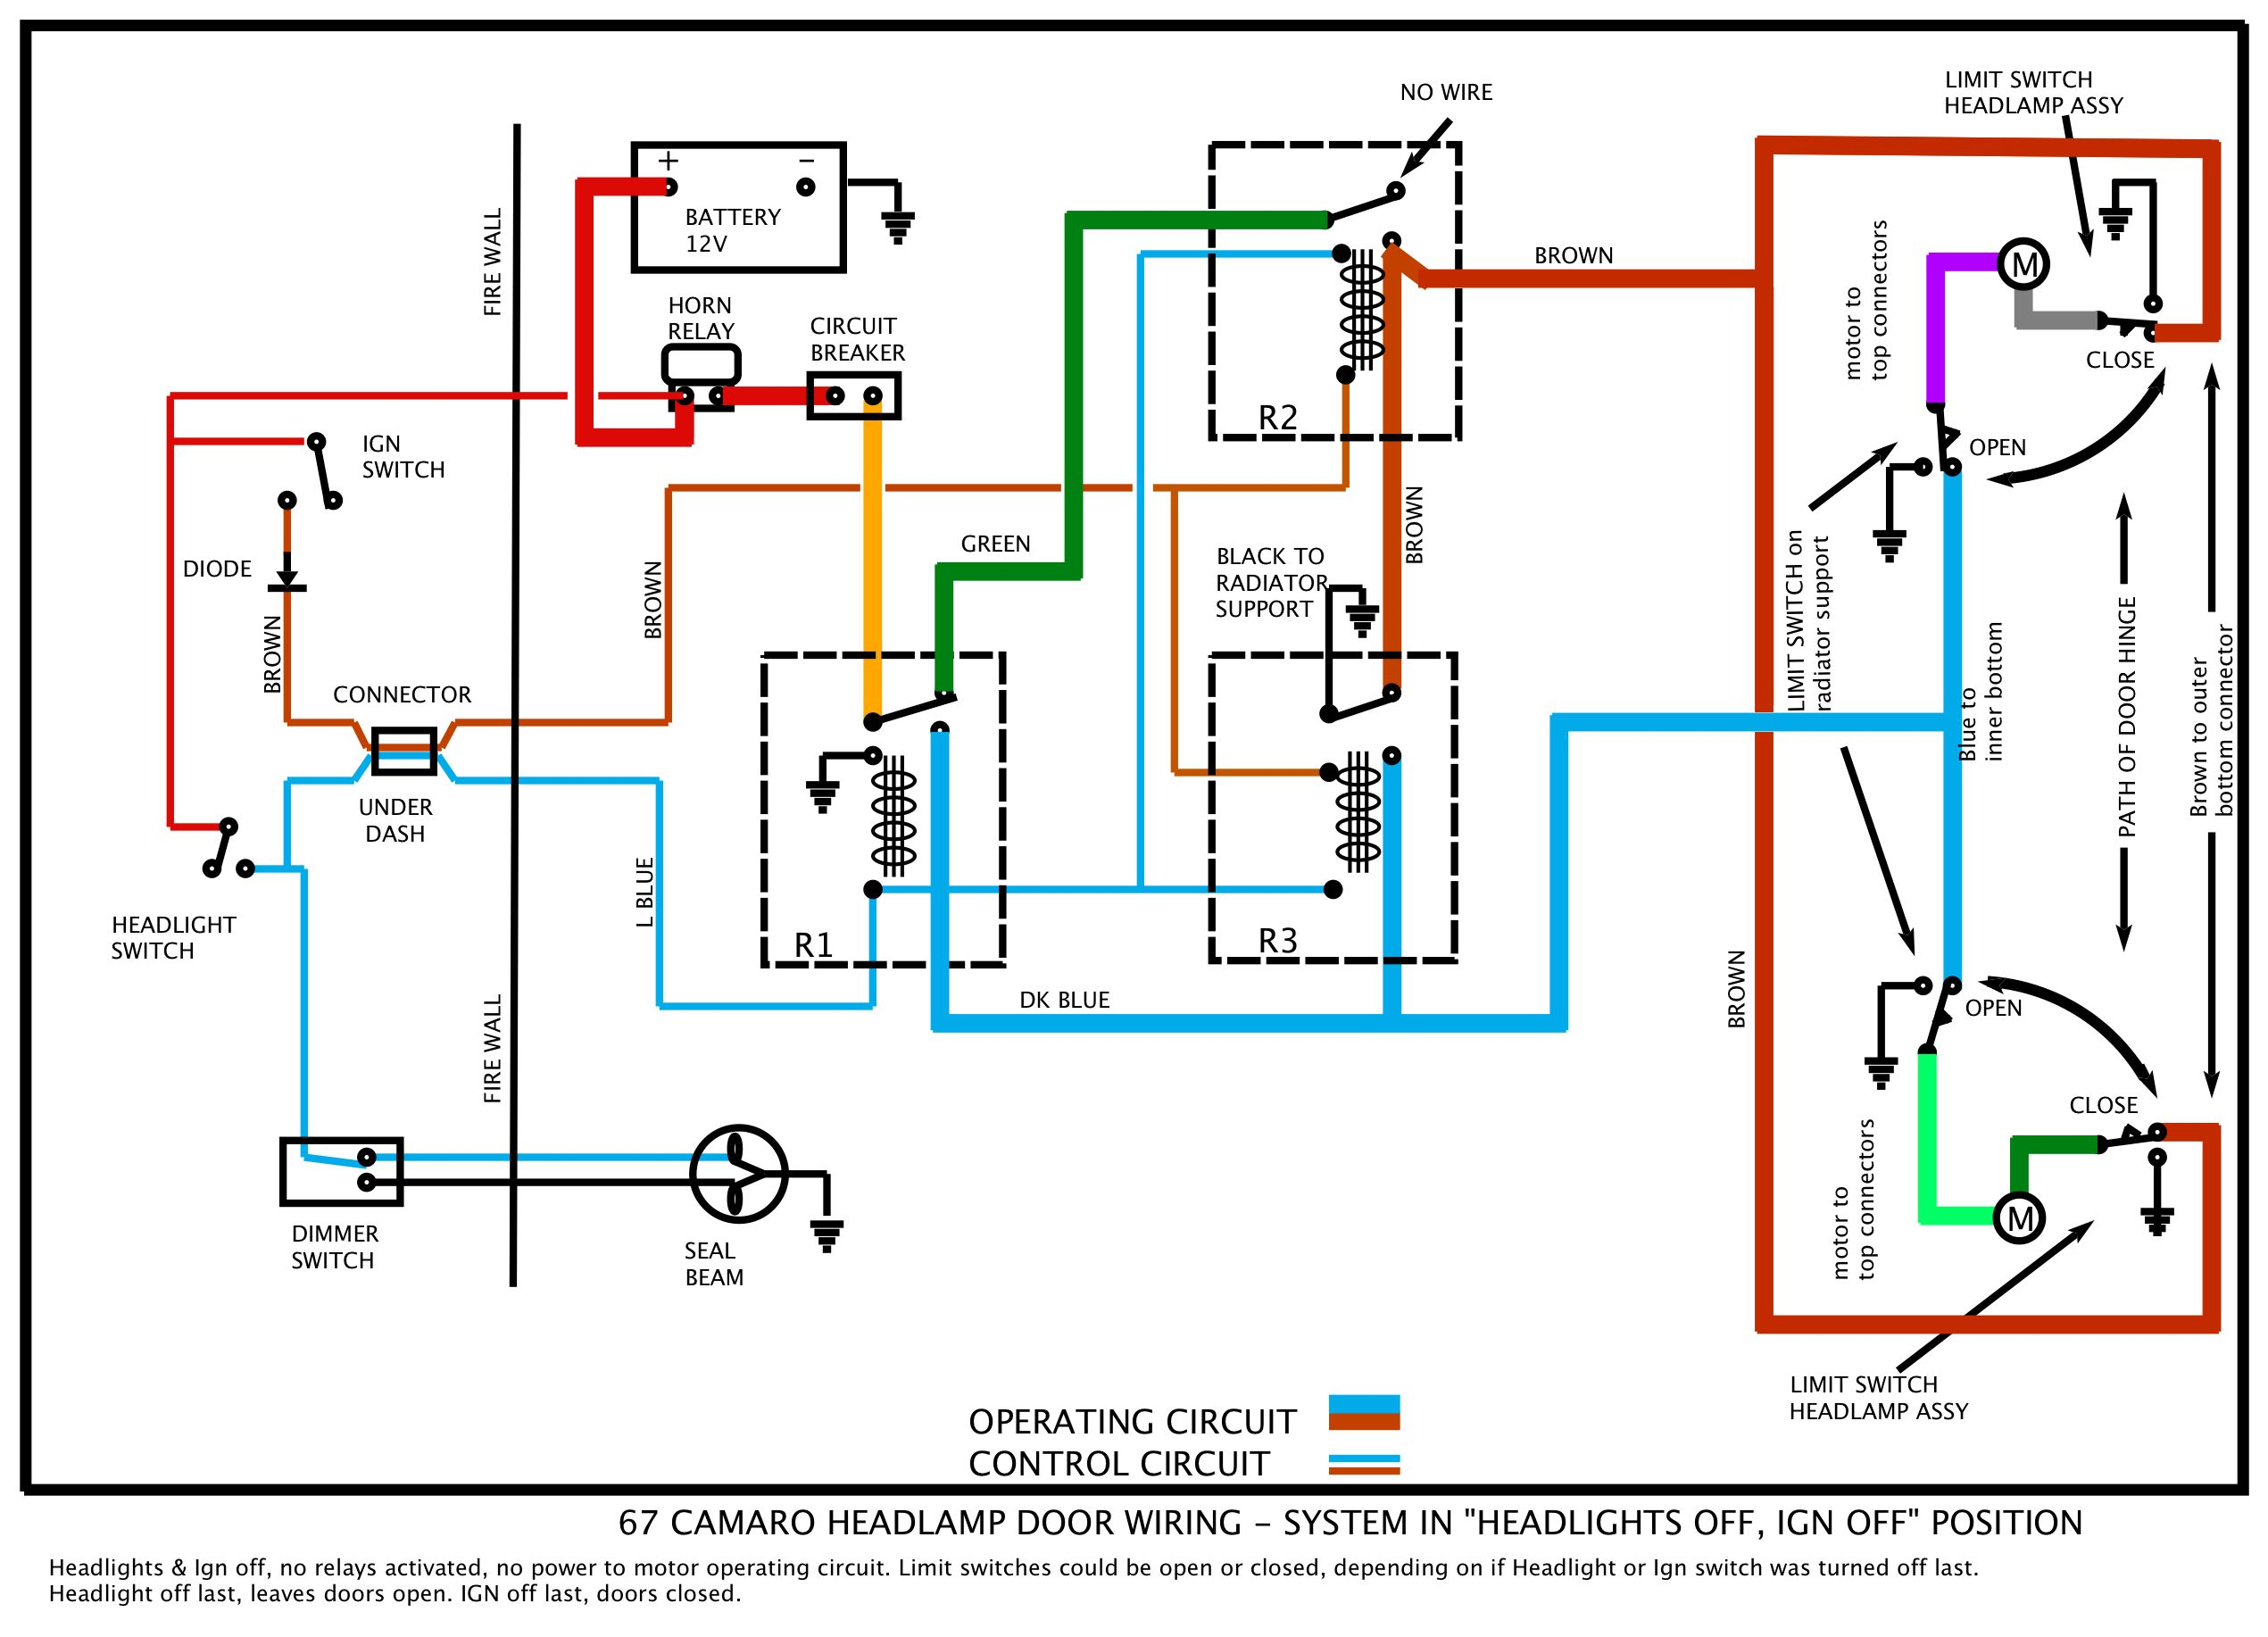 67_RS_HL_off_ign_off 67 rs headlight doors headlamp wiring diagram at reclaimingppi.co